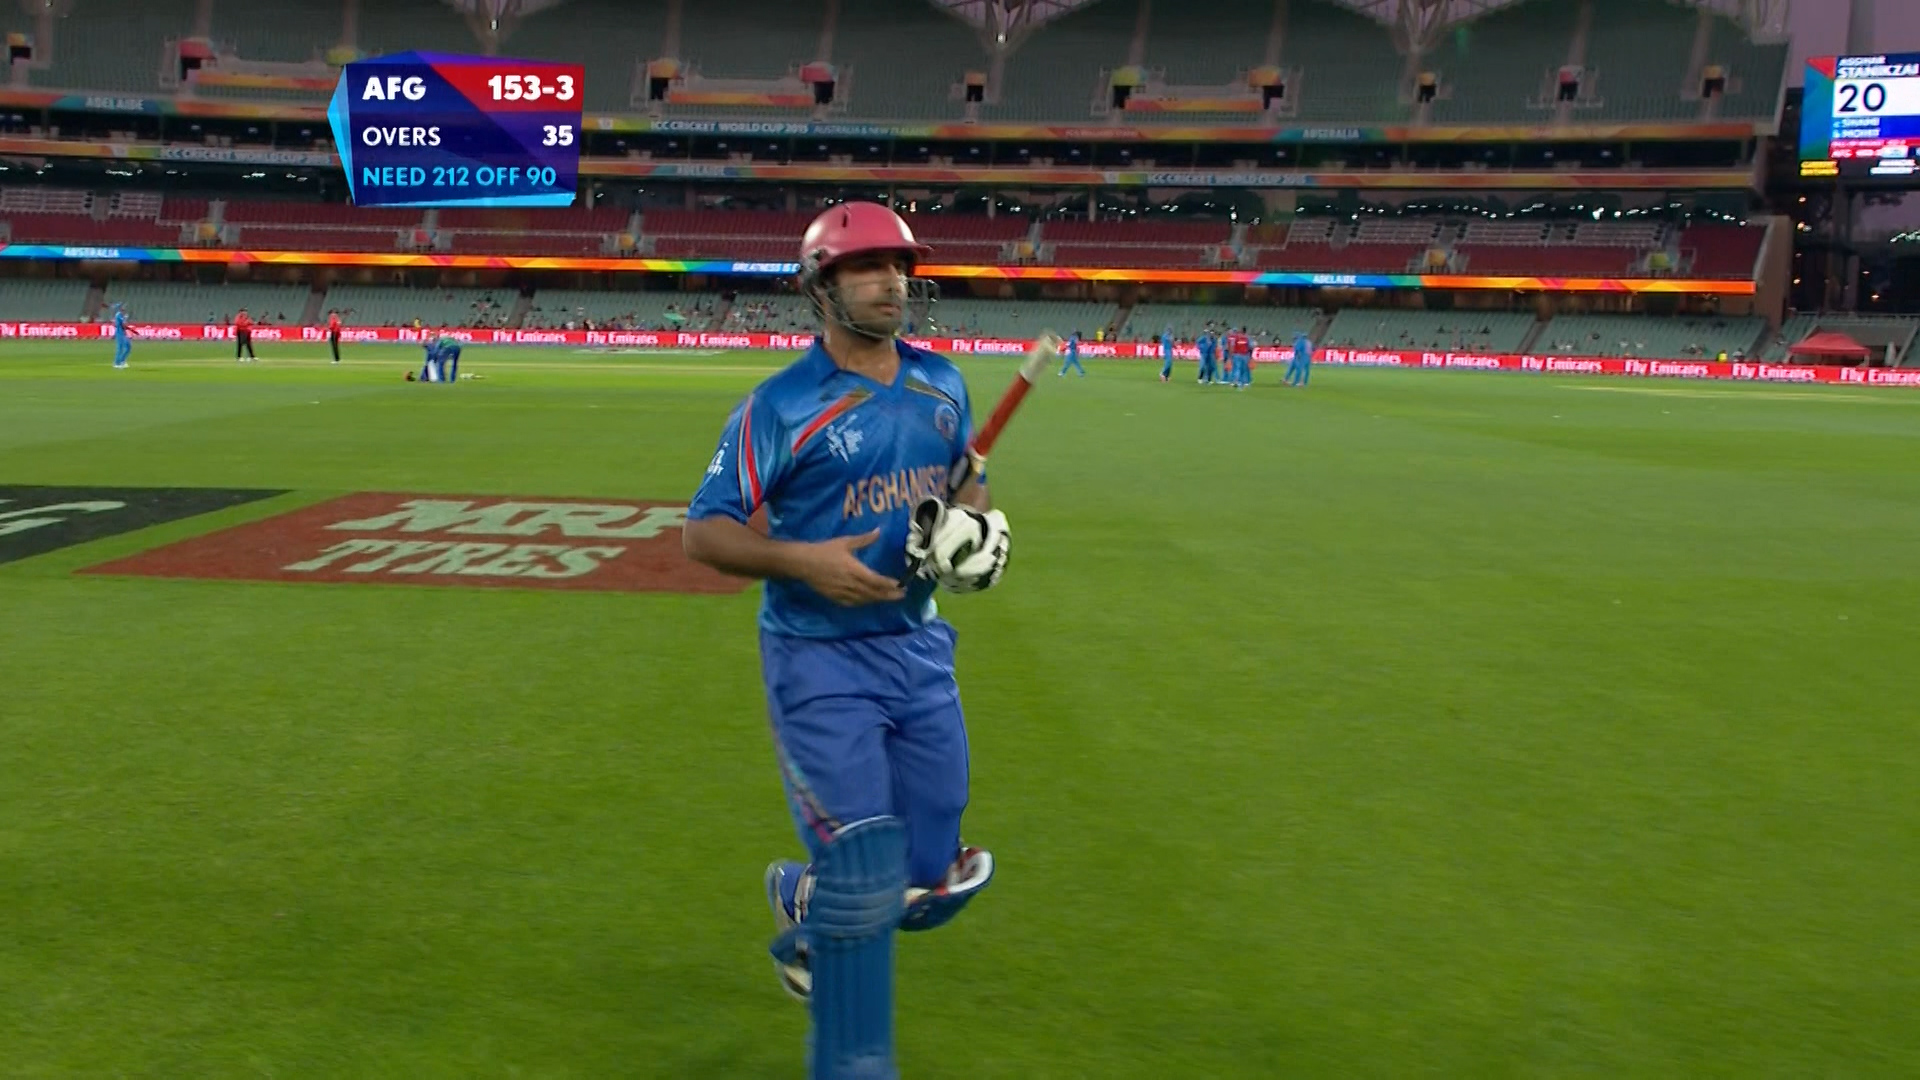 IND vs AFG – stanikzai wicket